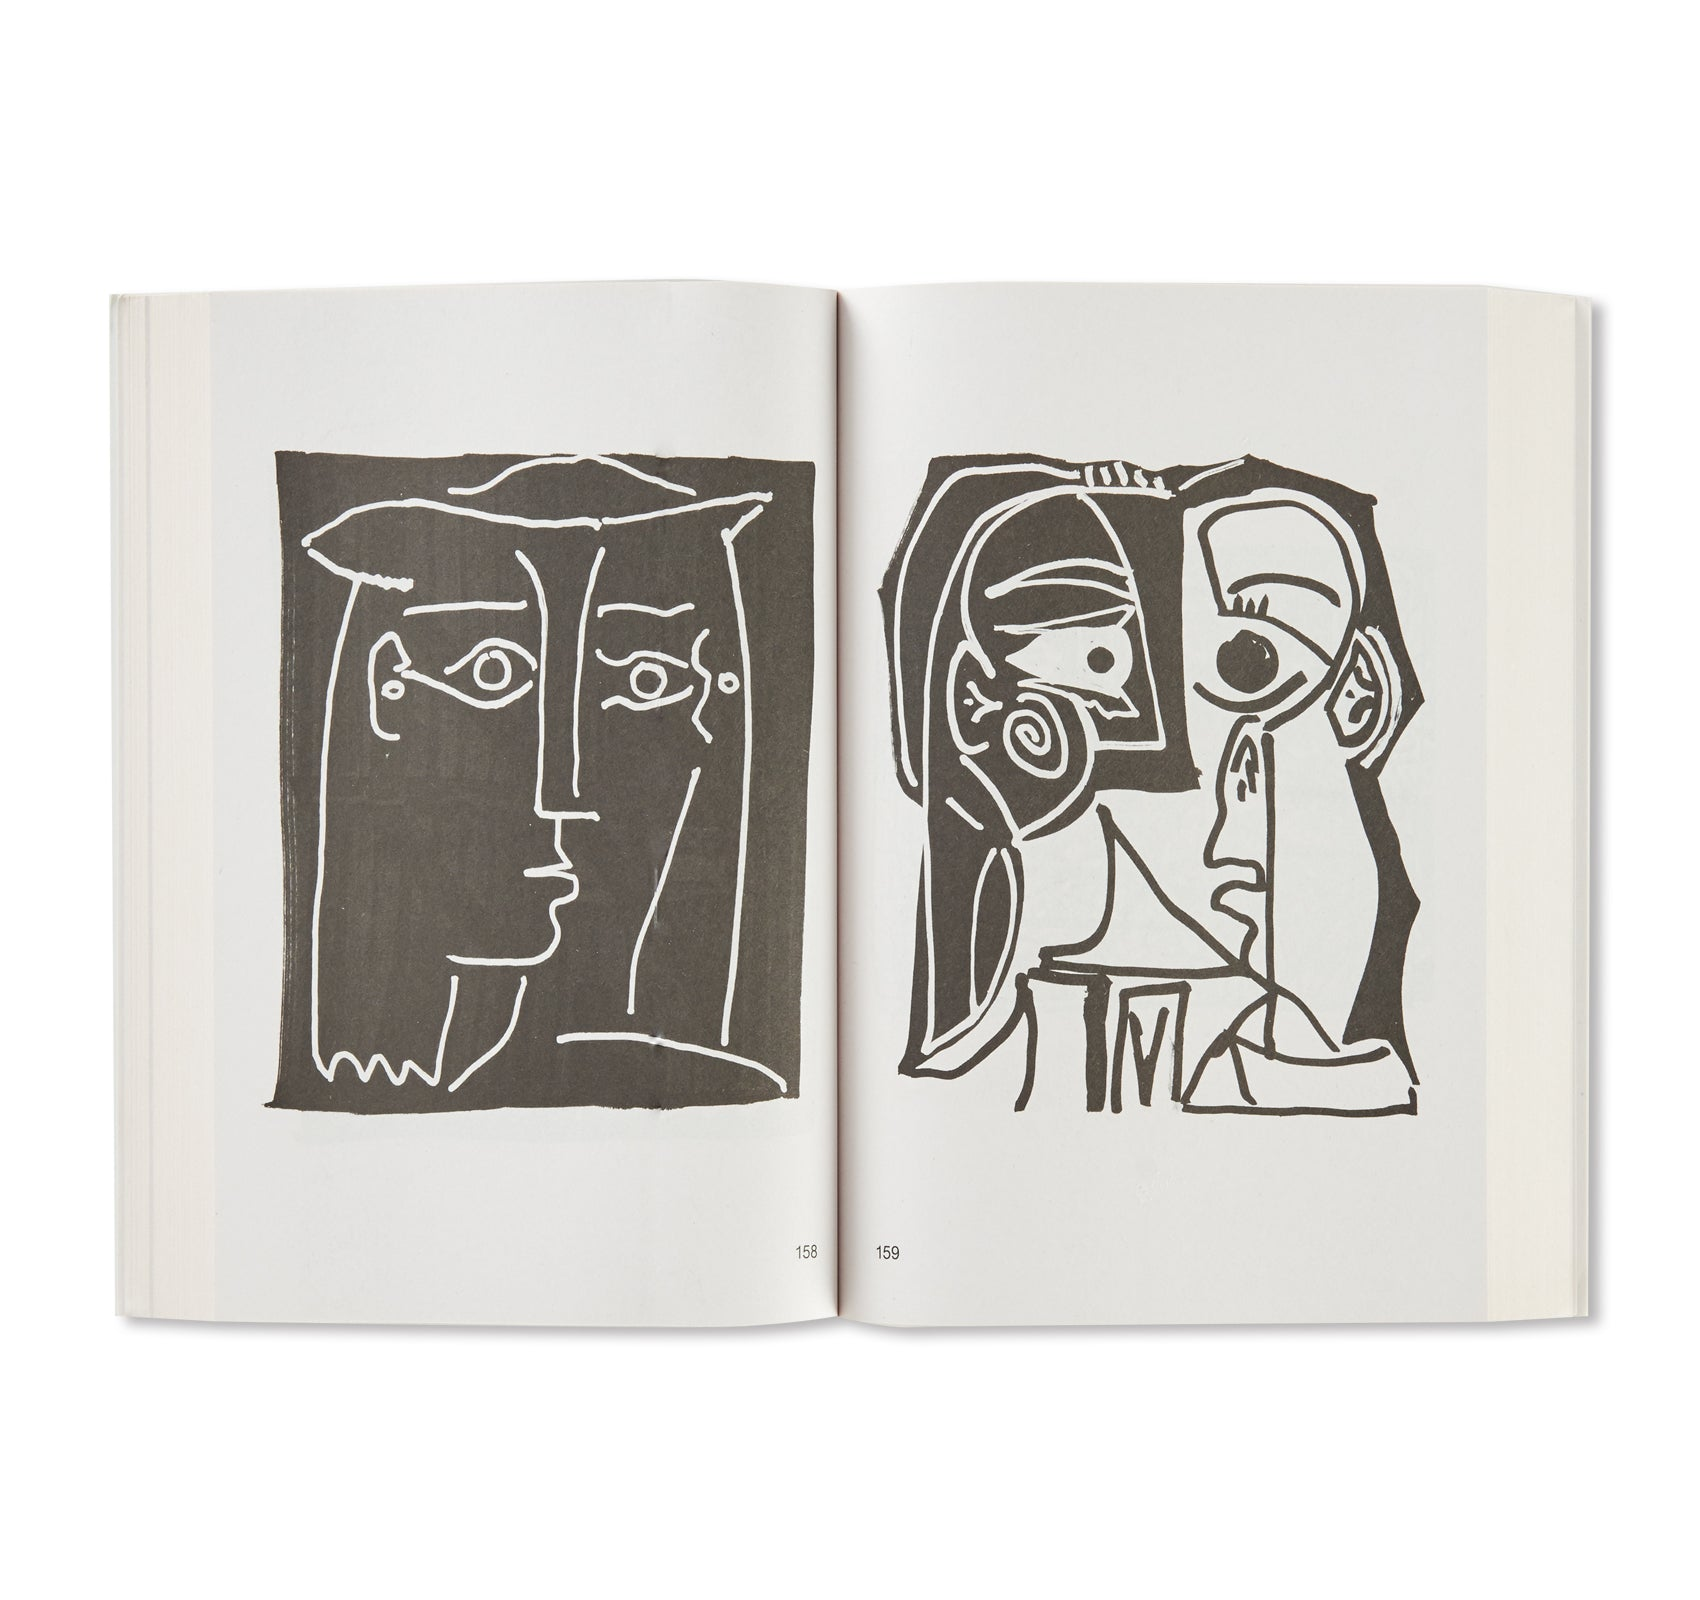 PICASSO AND I by Ryan Gander